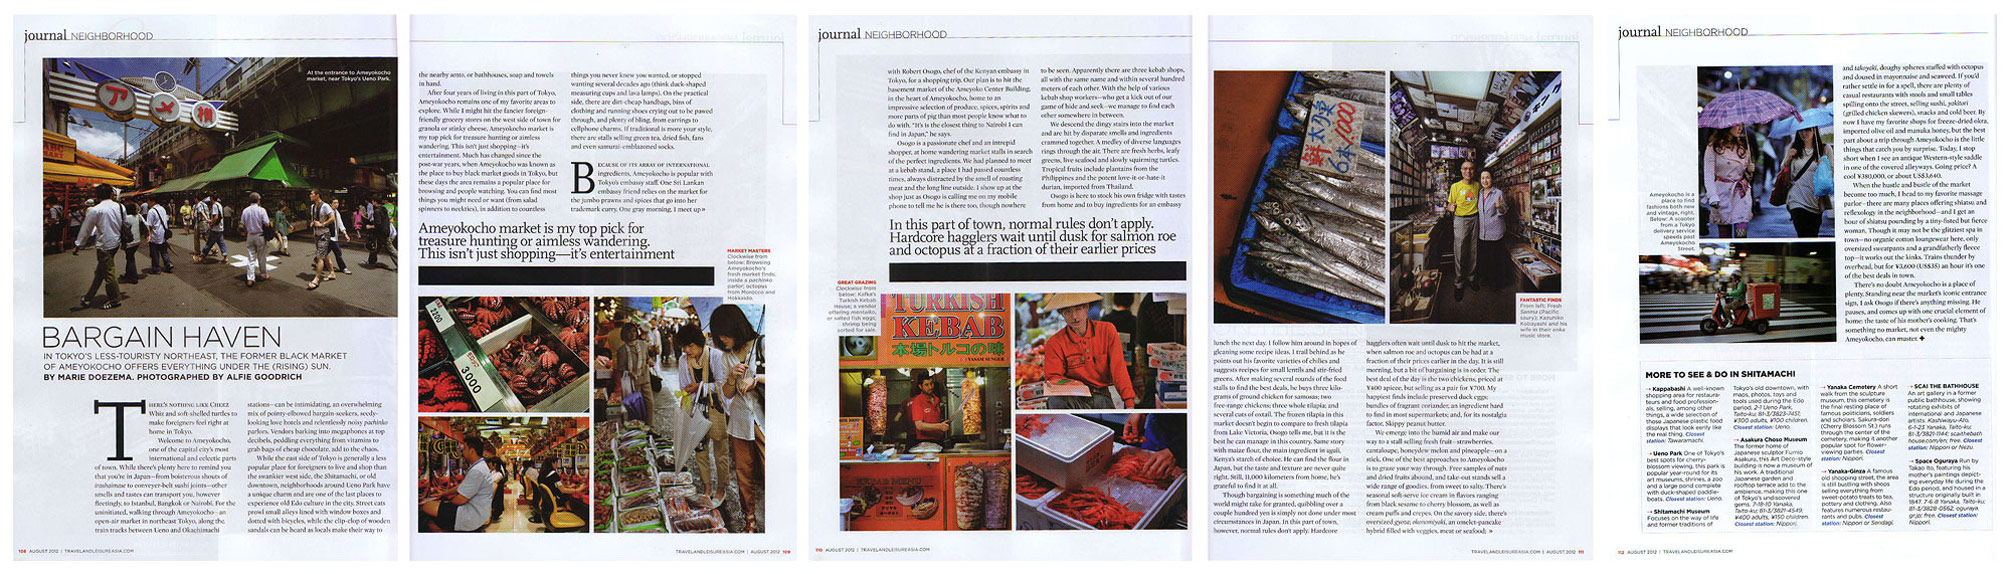 Feature on Ameyokocho, Tokyo, for Travel & Leisure Magazine